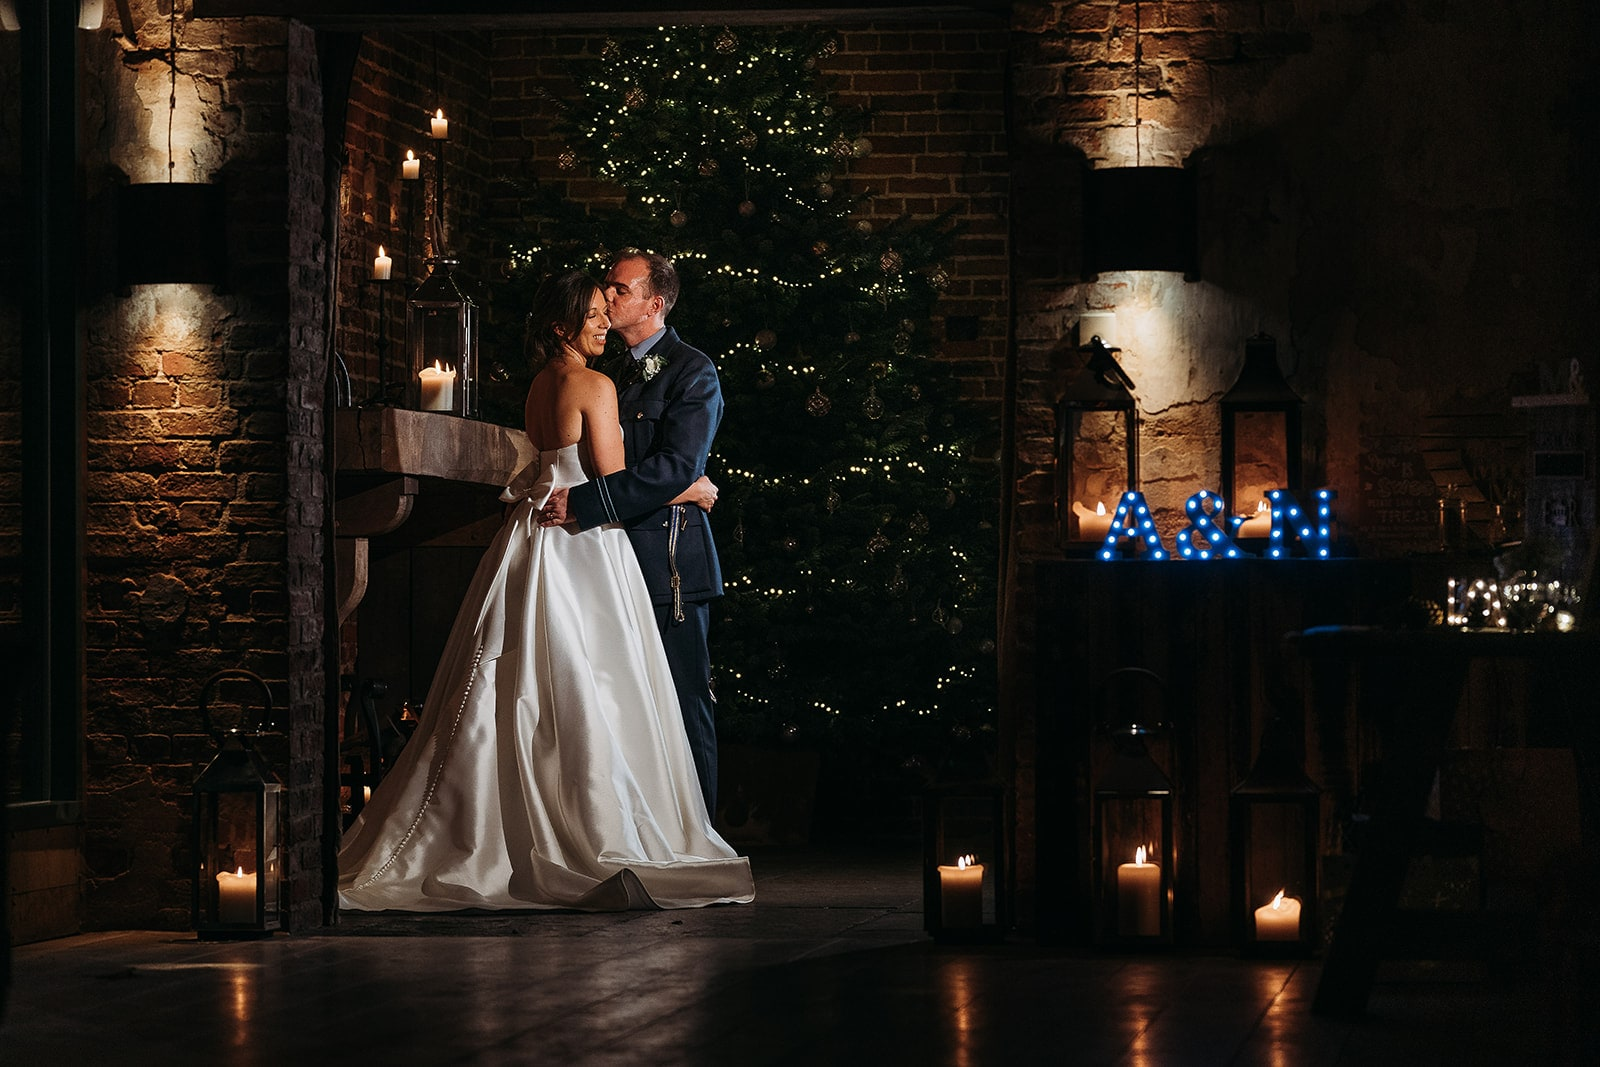 Christmas wedding photograph at Hazel Gap Barn with Christmas tree in background